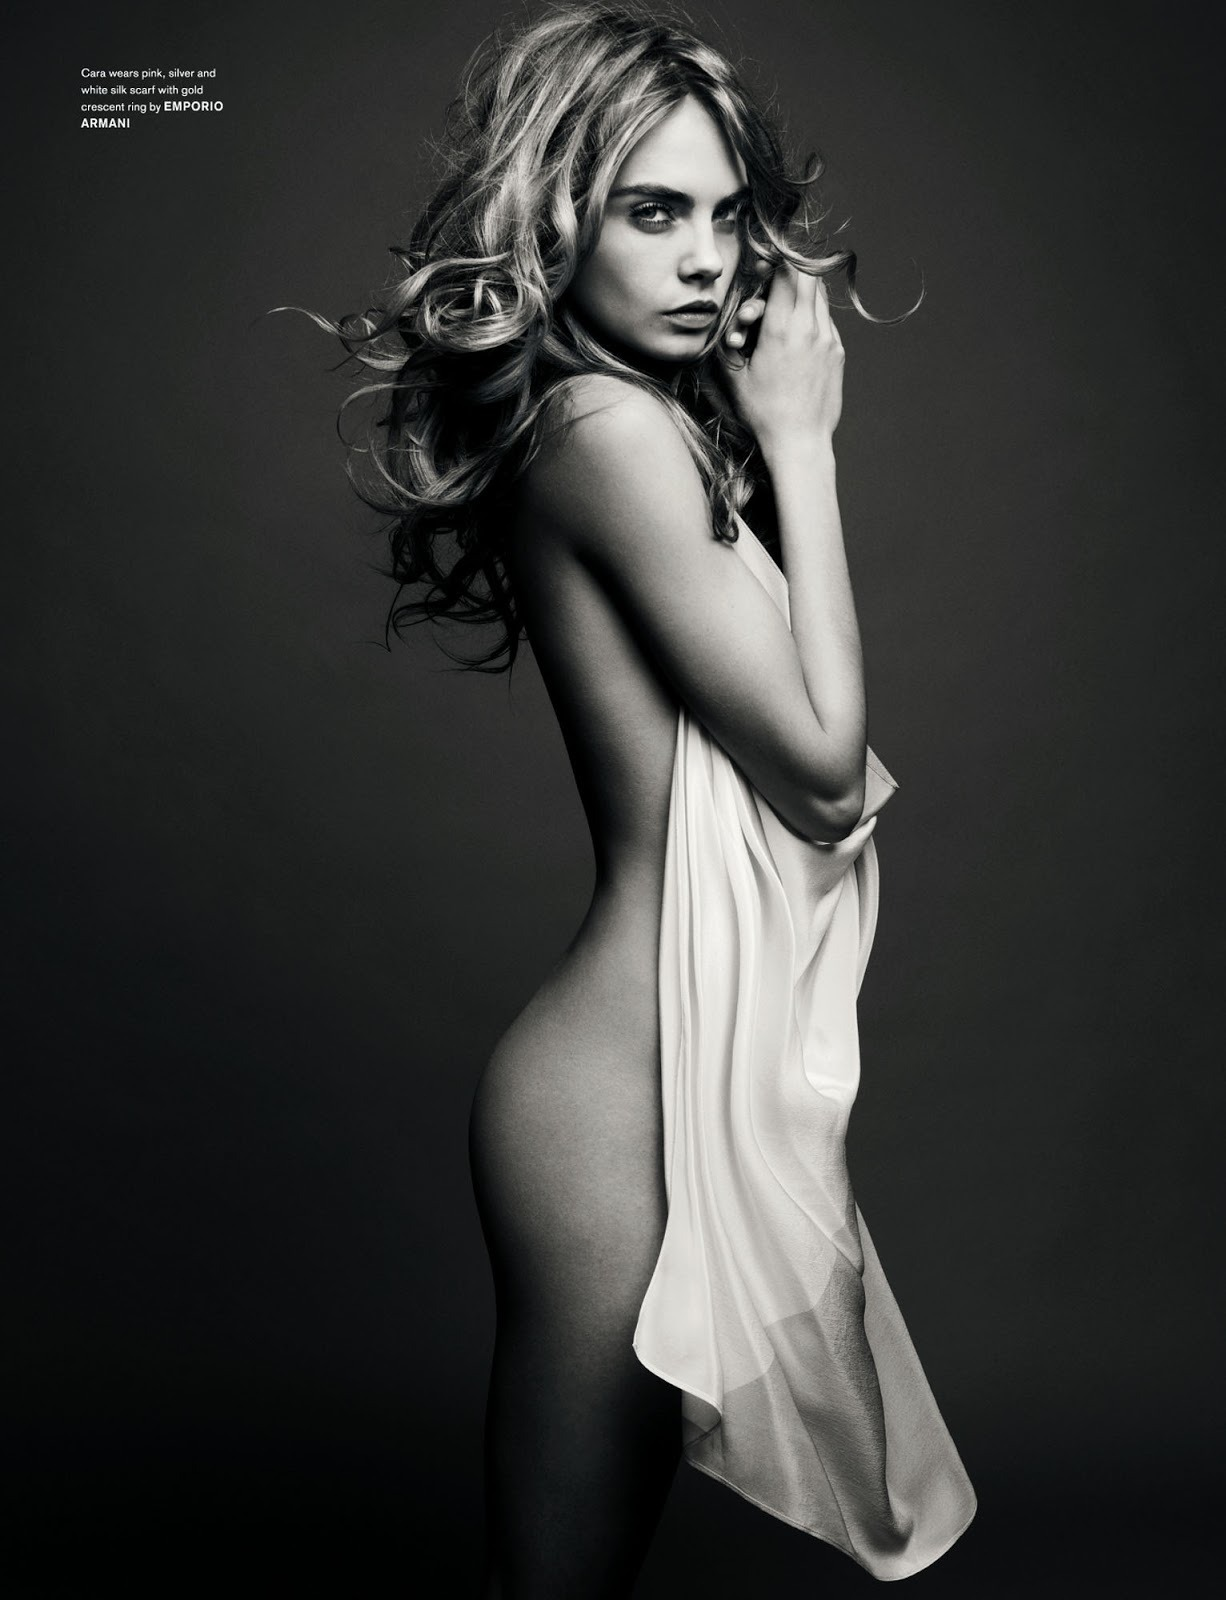 pussylesqueer:  Cara Delevingne: The Girls - Love #9 by Solve Sundsbo, Spring/Summer 2013